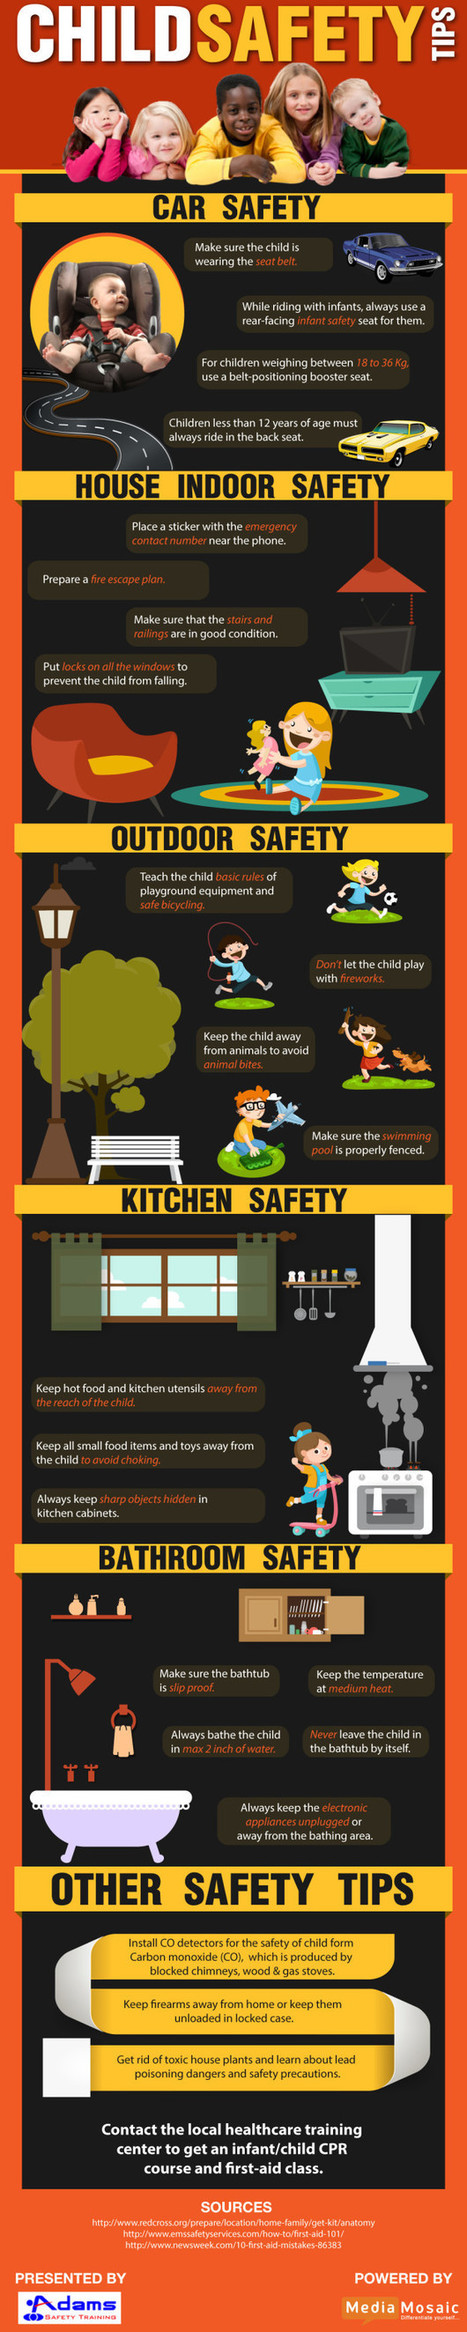 Tips for Keeping Children Safe at Home and Outdoor | Infographic | Scoop.it